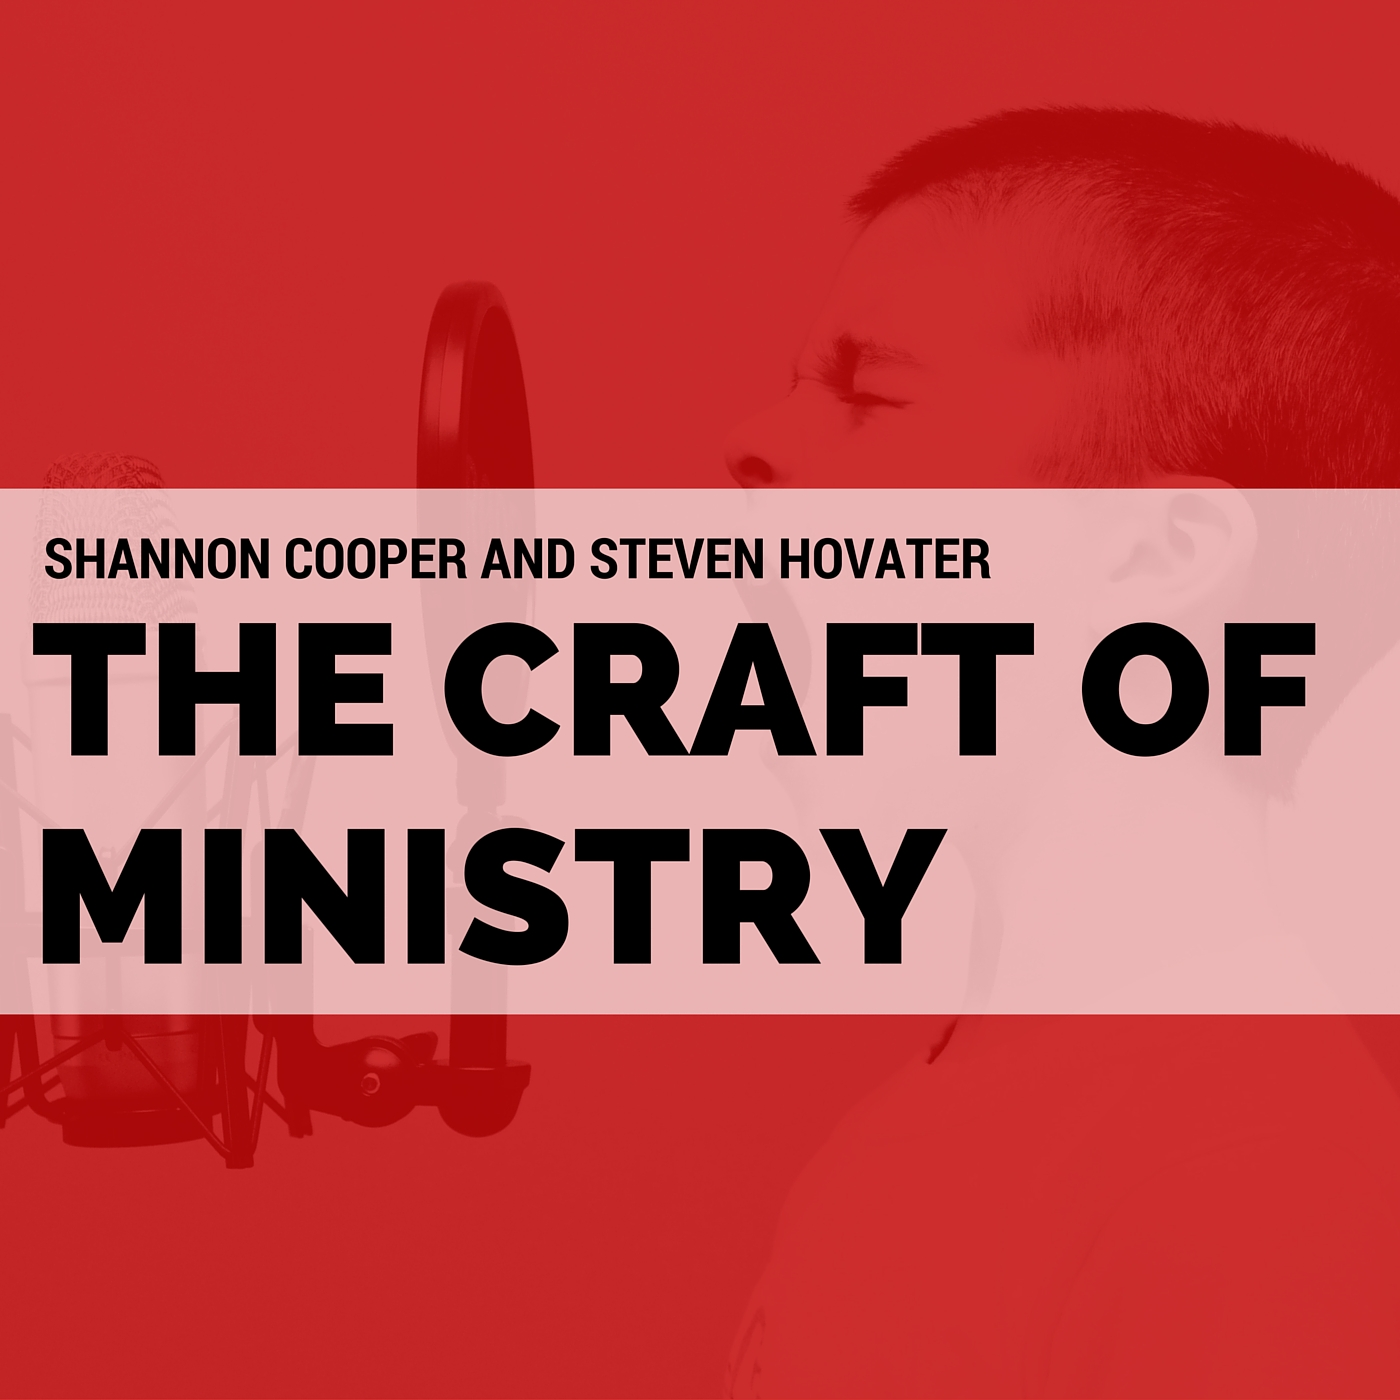 The Craft of Ministry logo